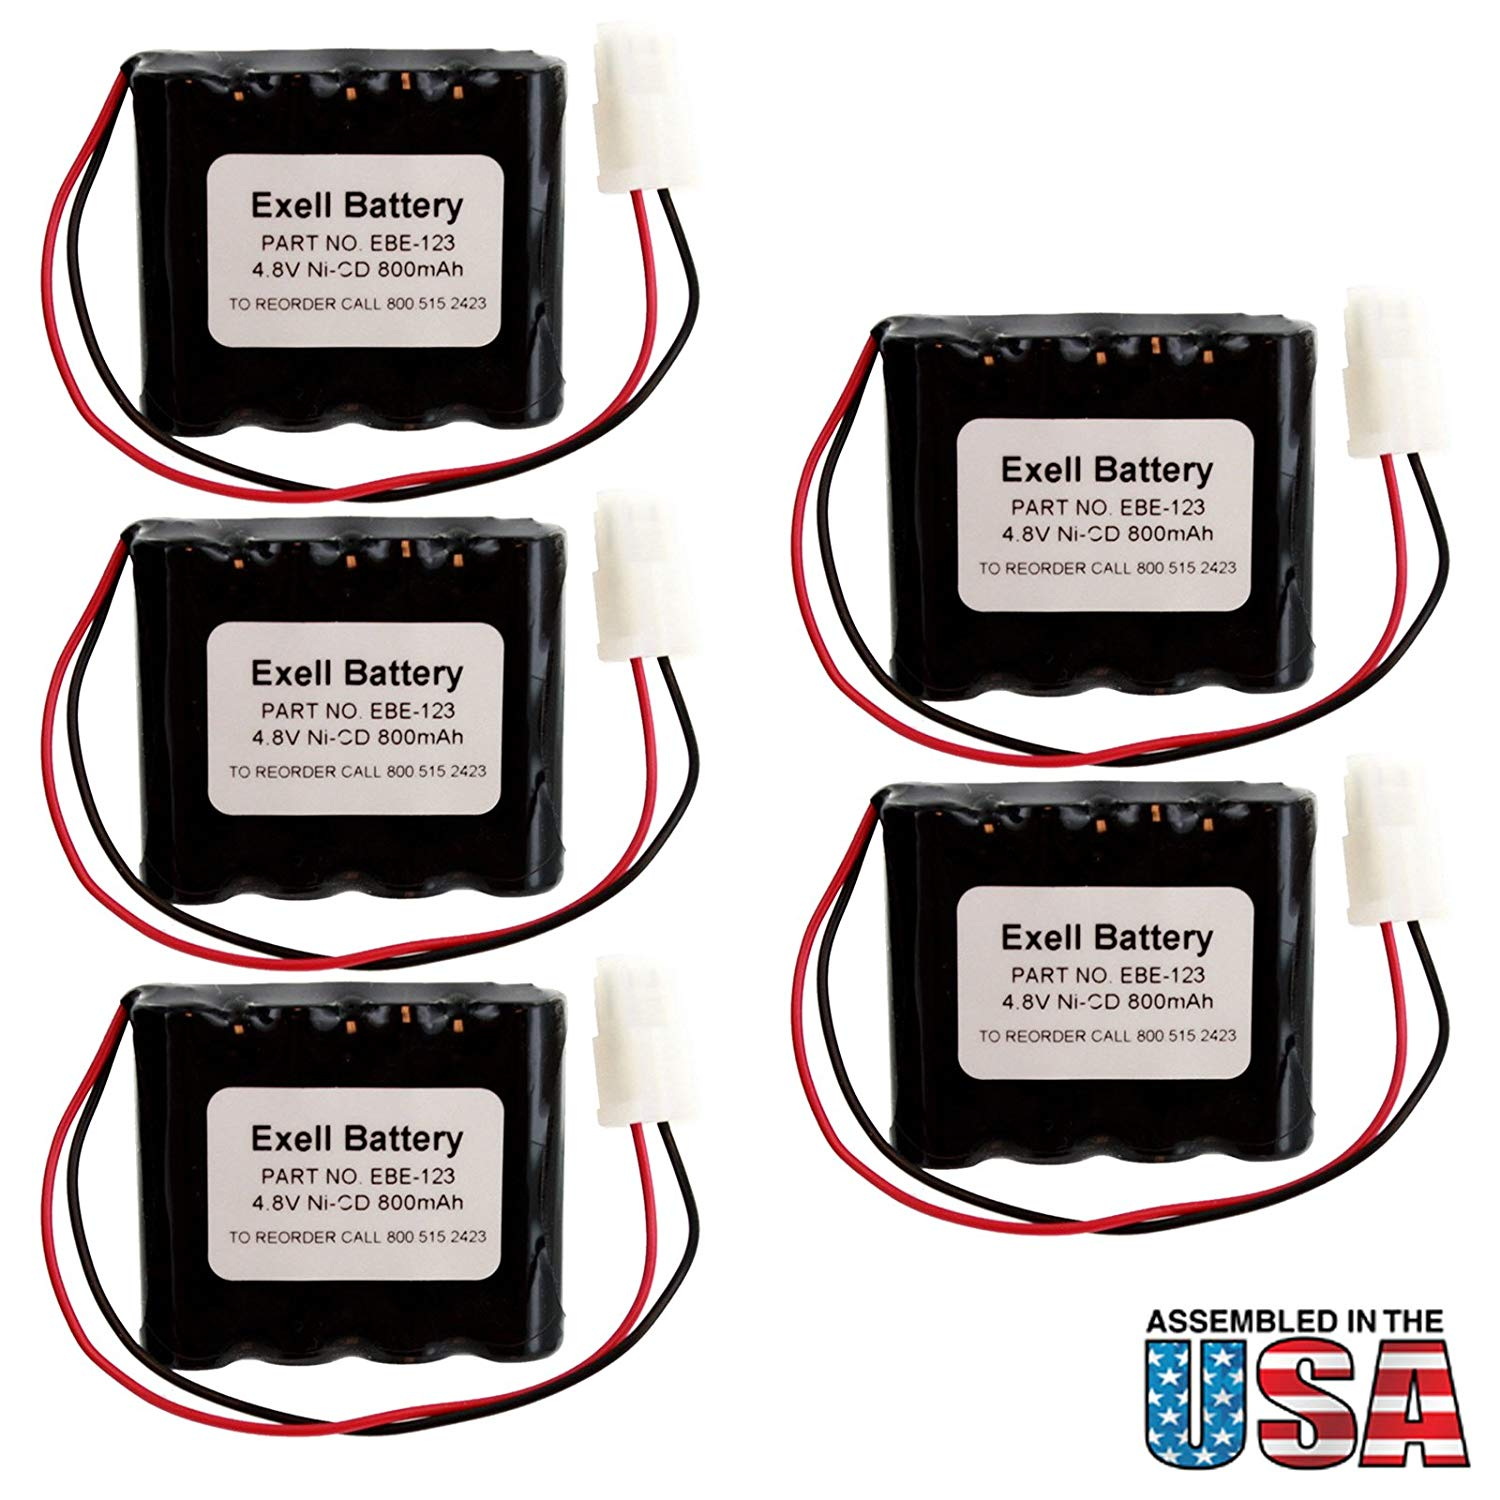 5pc Exell Battery Emergency Lighting Battery Fits and Replaces Interstate ANIC0546, Lithonia 277ELNF, Lithonia ELB4865N, Lithonia LESB1R FAST USA SHIP